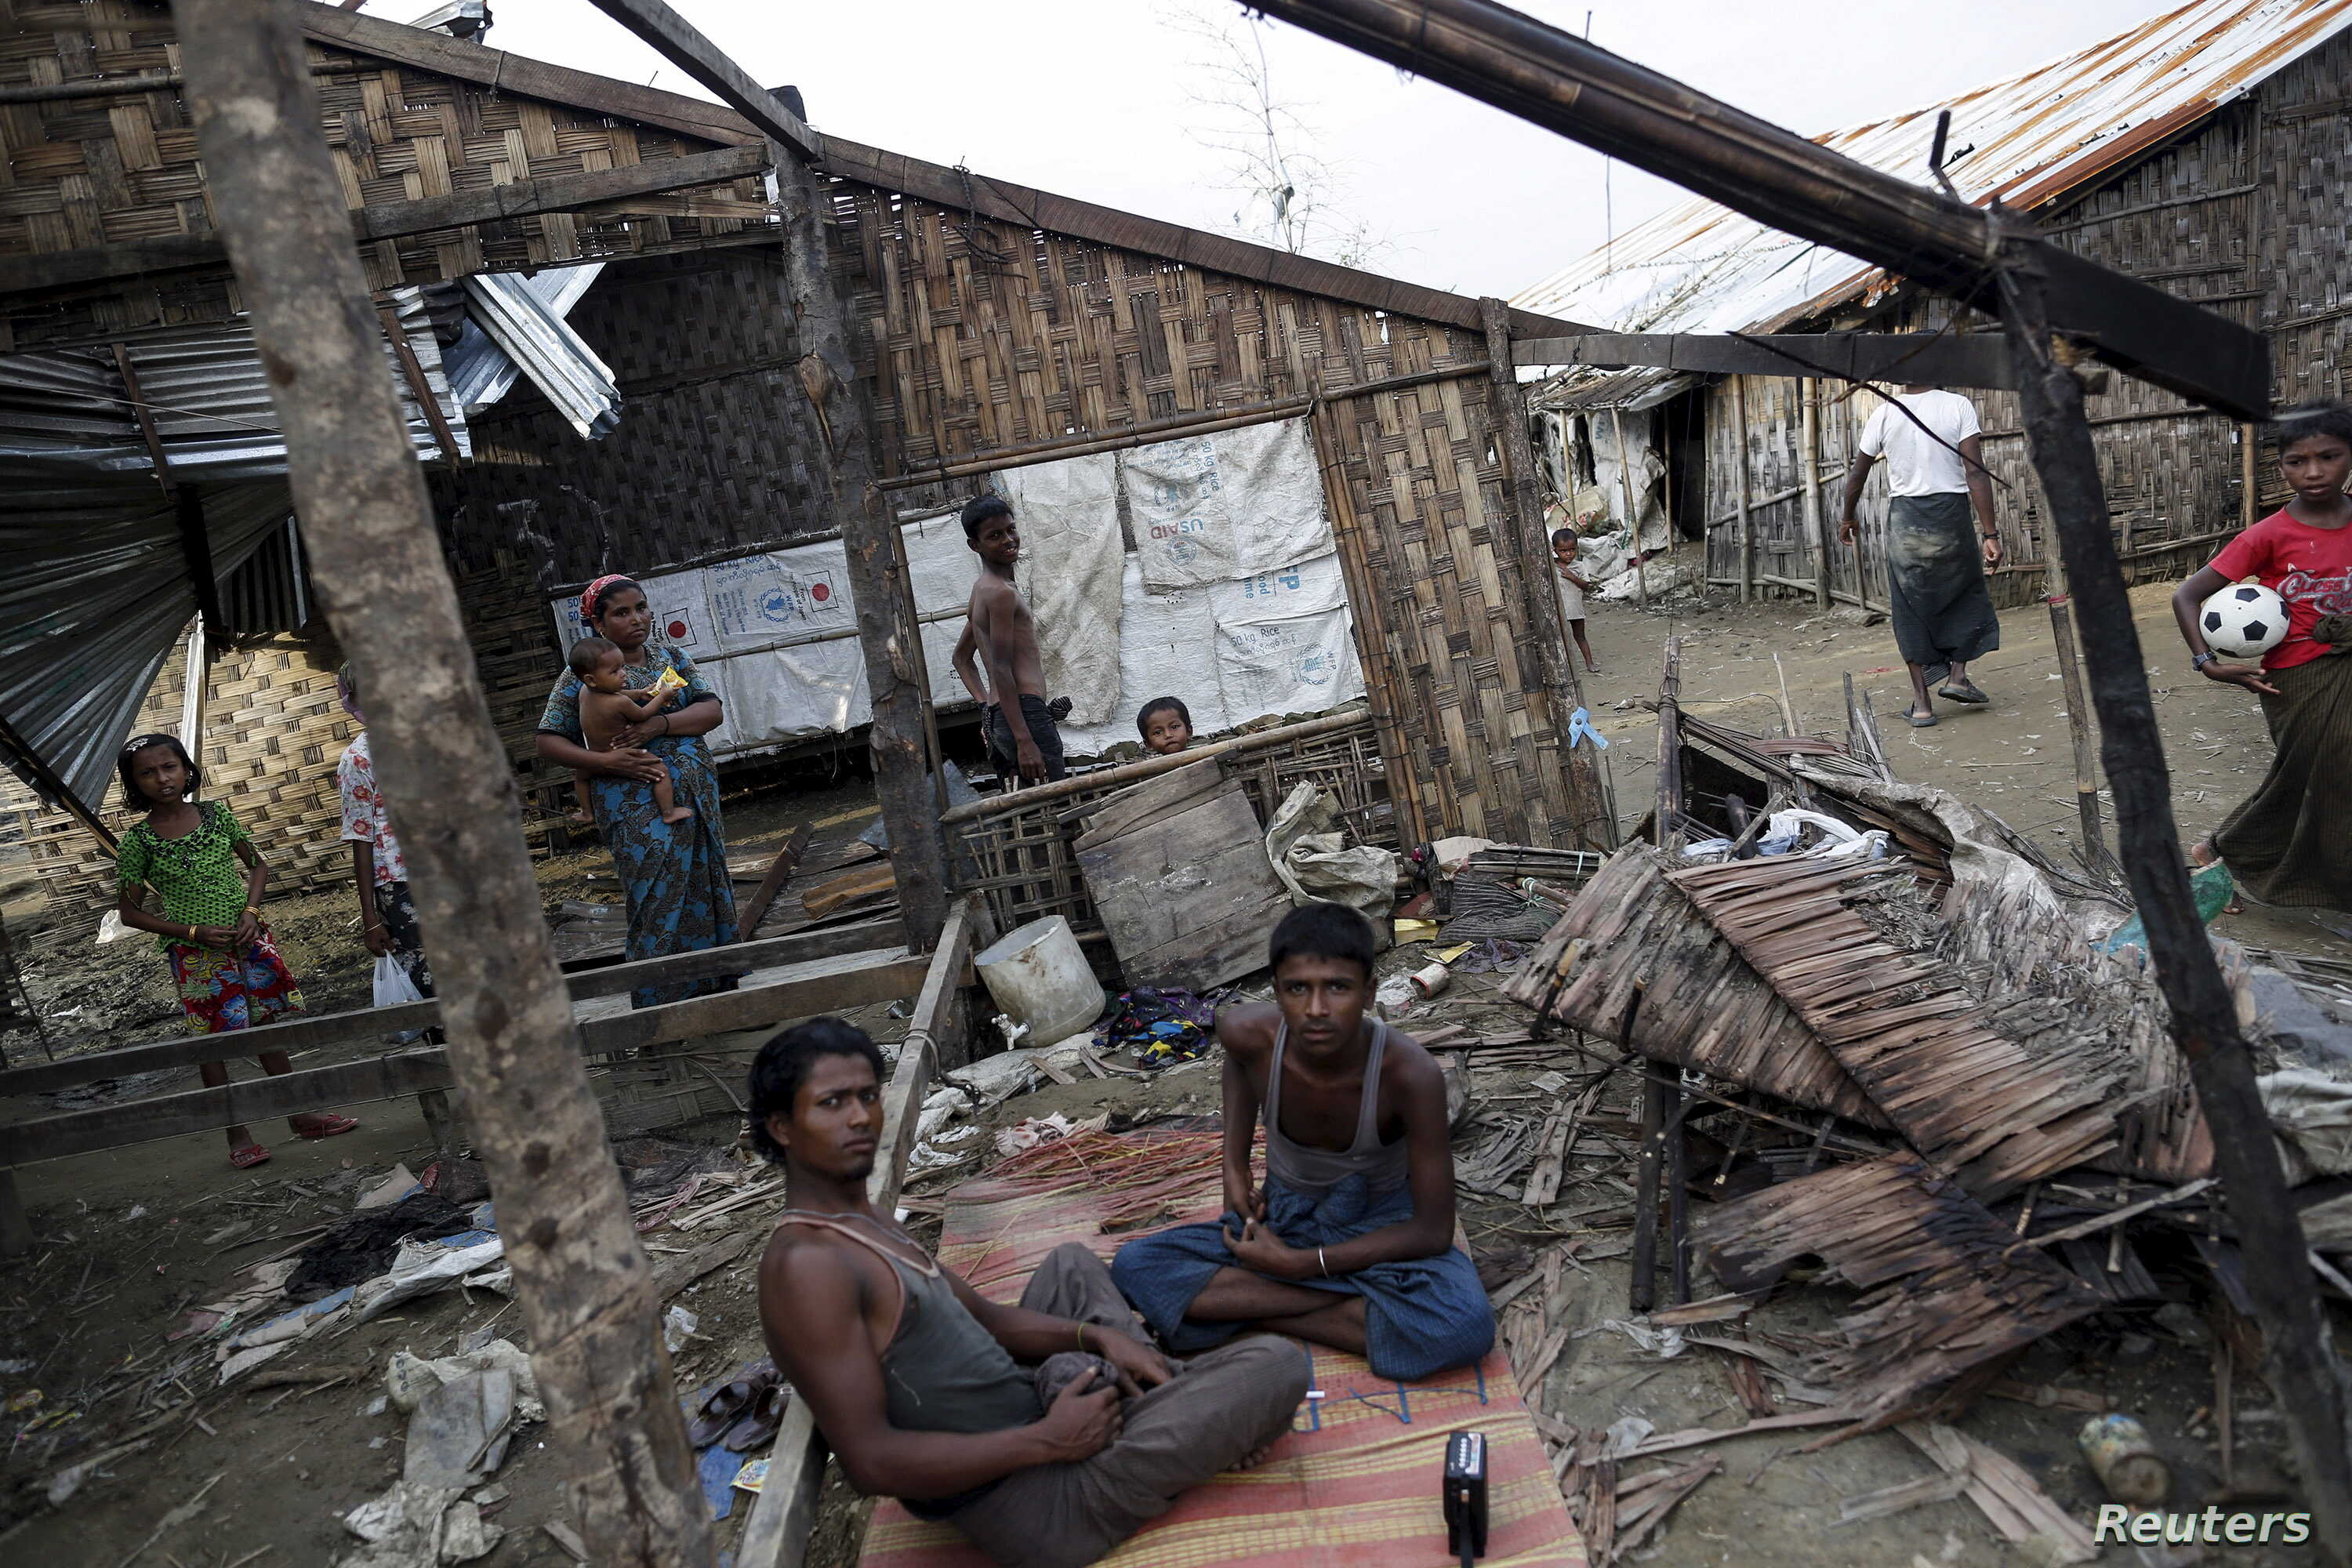 FILE - Rohingya people pass their time in a damaged shelter in Rohingya IDP camp outside Sittwe, Rakhine state, Aug. 4, 2015.